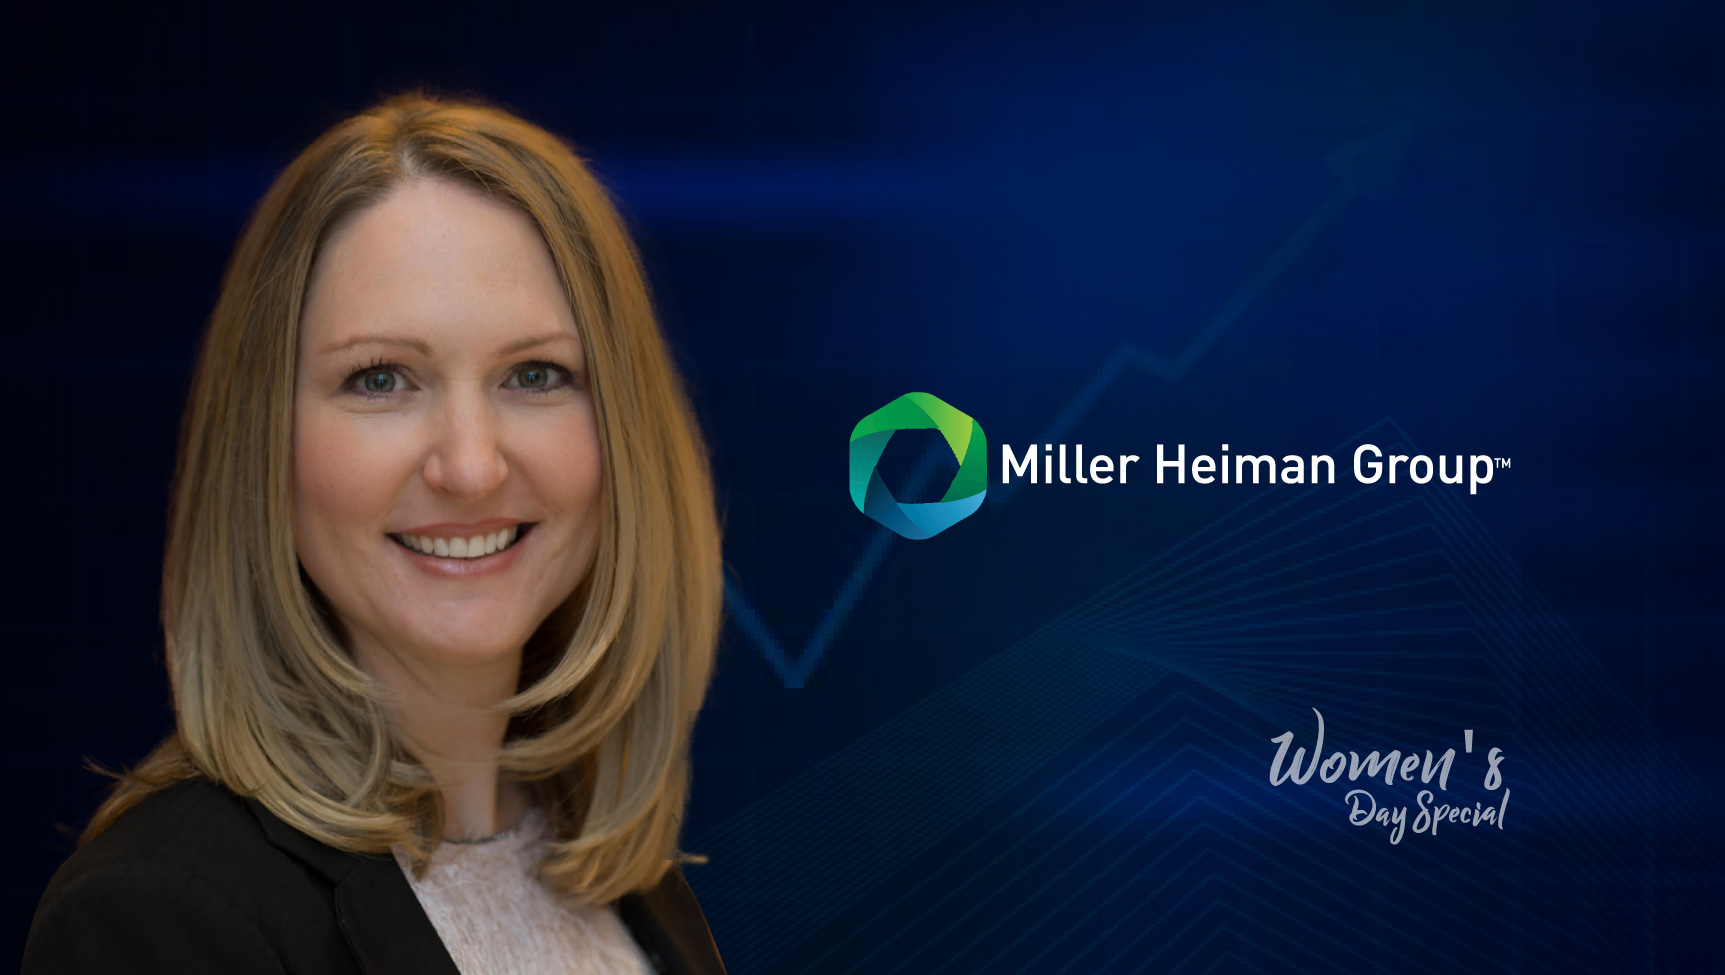 SalesTech Interview with Dana Hamerschlag, Chief Product Officer at Miller Heiman Group